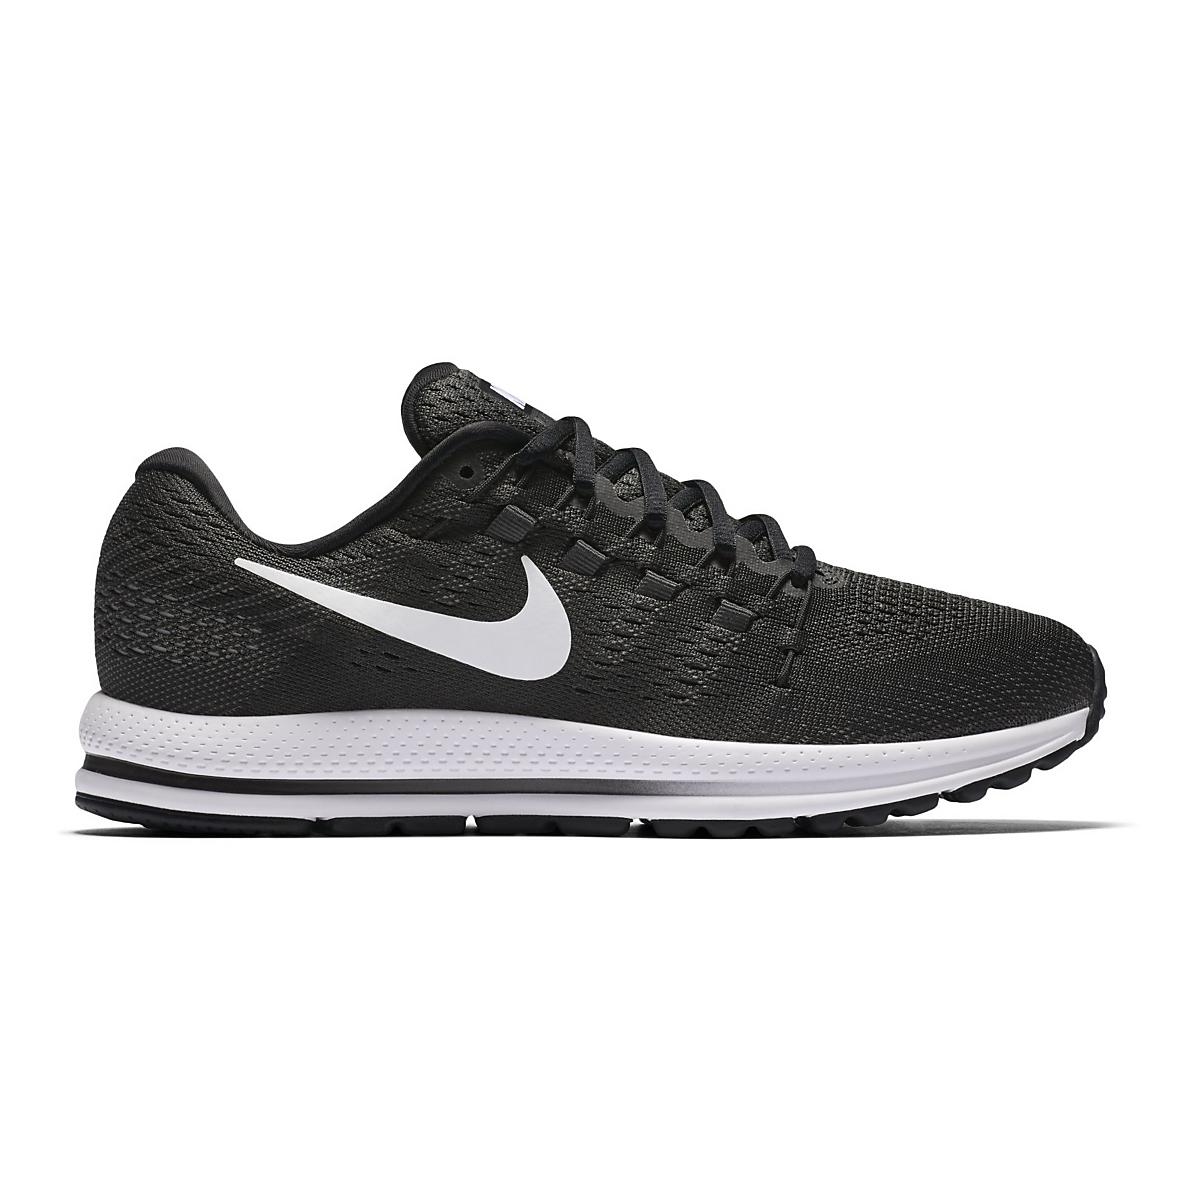 caja Céntrico compañera de clases  Men's Nike Air Zoom Vomero 12 Running Shoes | Road Runner Sports